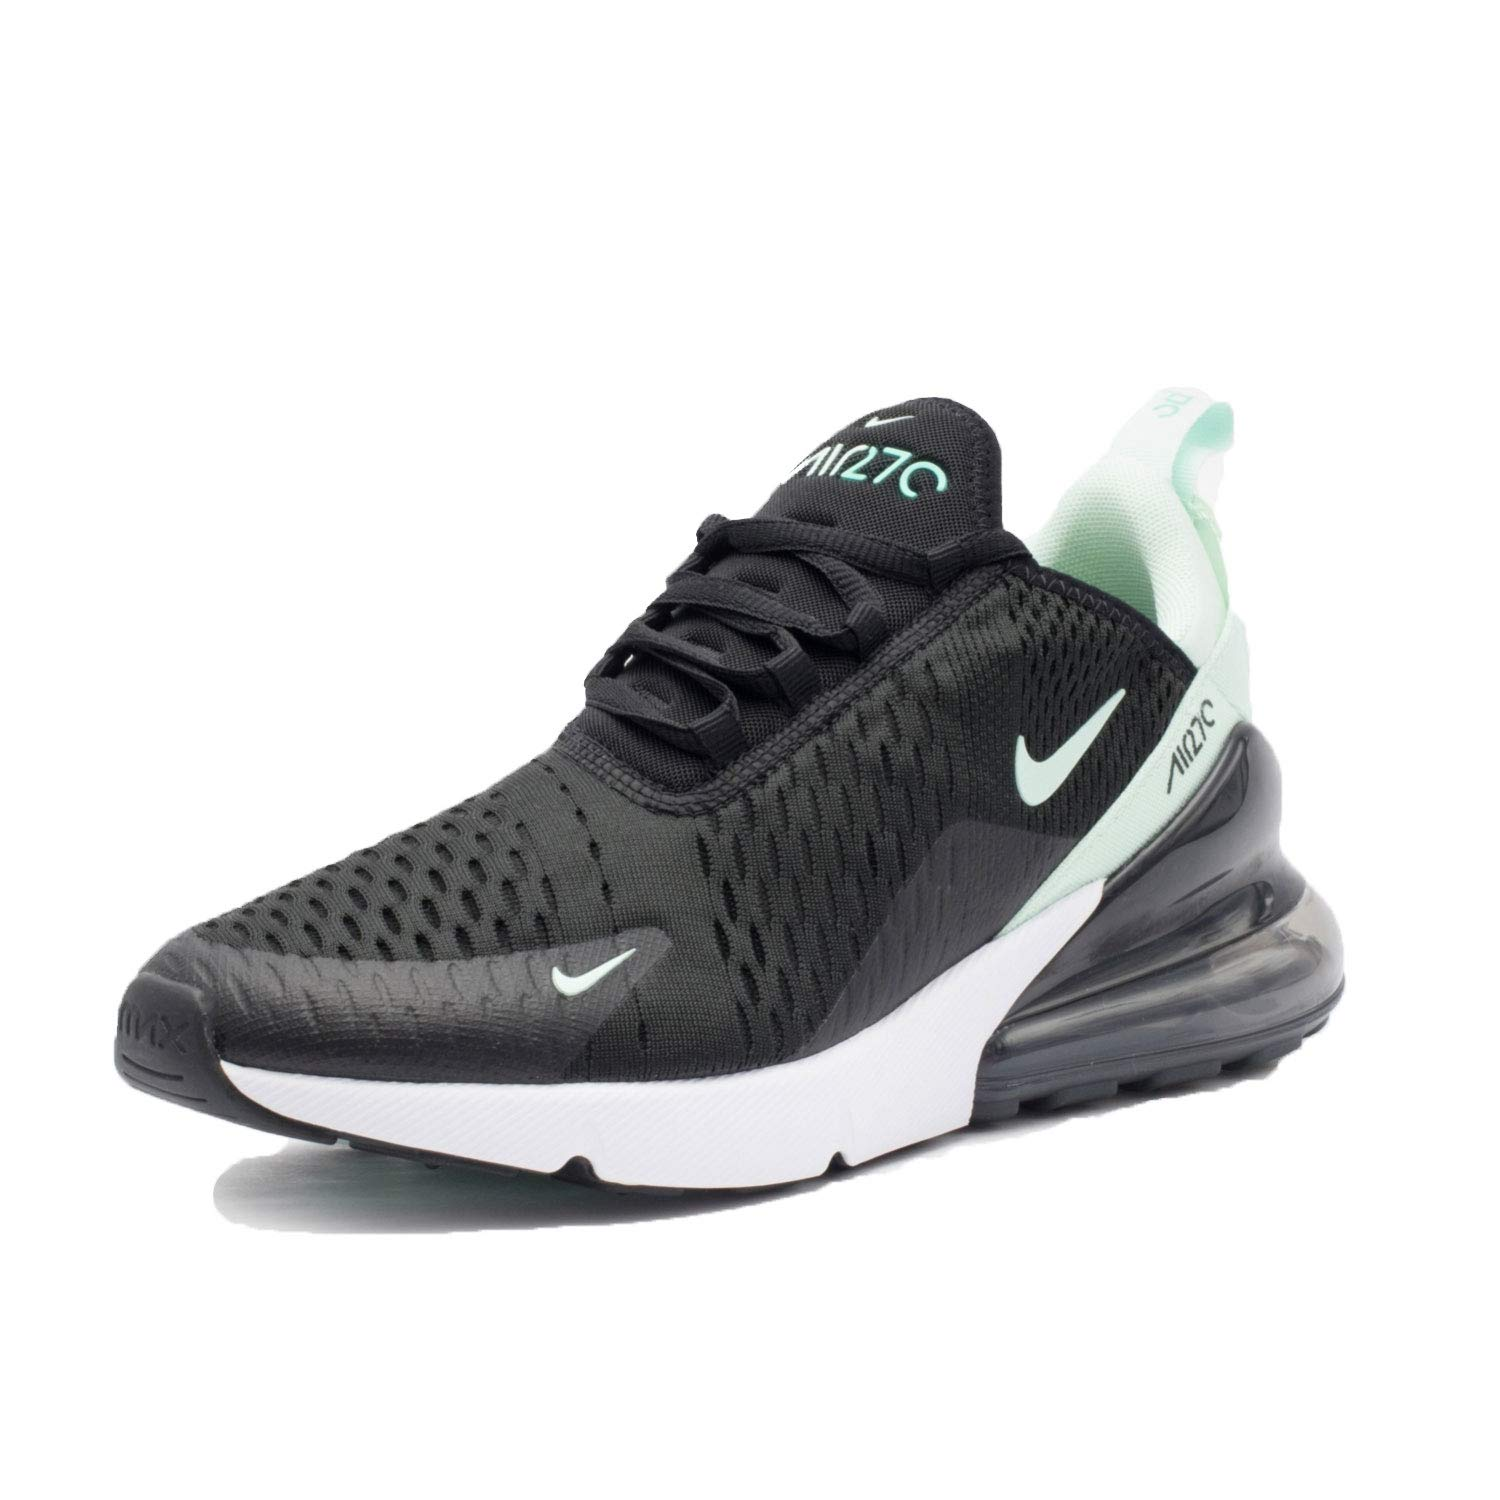 new concept 7d763 b8d78 Nike W Air Max 270 Women Shoes, Trainers, Black Iglo-Hyper Turq-White, 3  UK  Amazon.co.uk  Sports   Outdoors